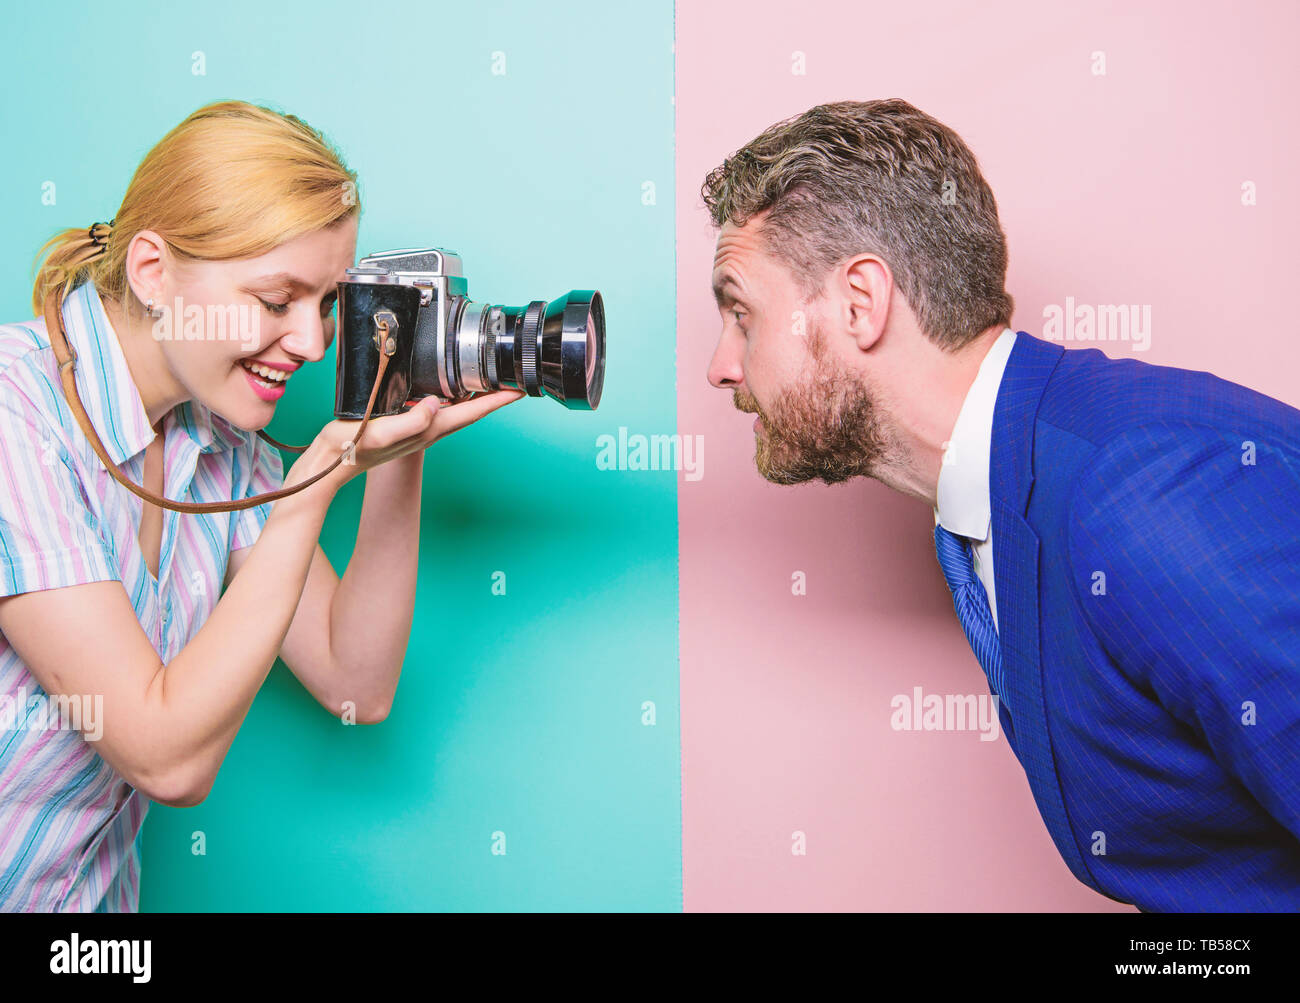 Enjoying Photo Shoot Session Photographer Shooting Male Model In Studio Pretty Woman Using Professional Camera Businessman Posing In Front Of Female Photographer Fashion Shooting In Photo Studio Stock Photo Alamy